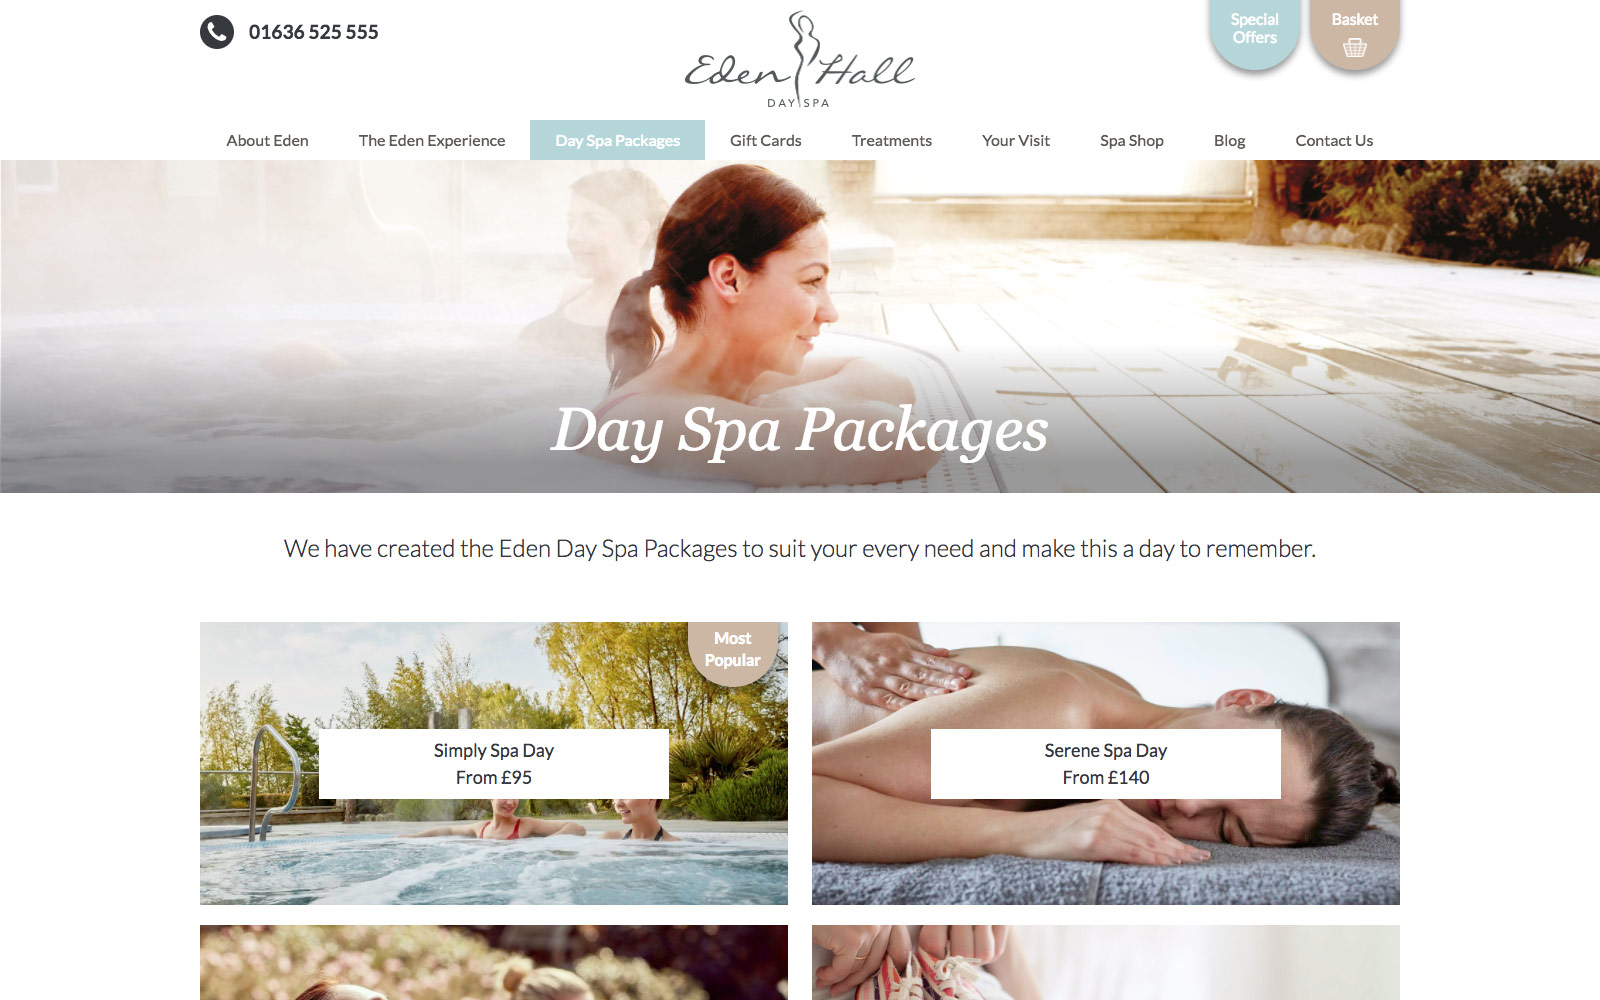 Eden Hall website packages view